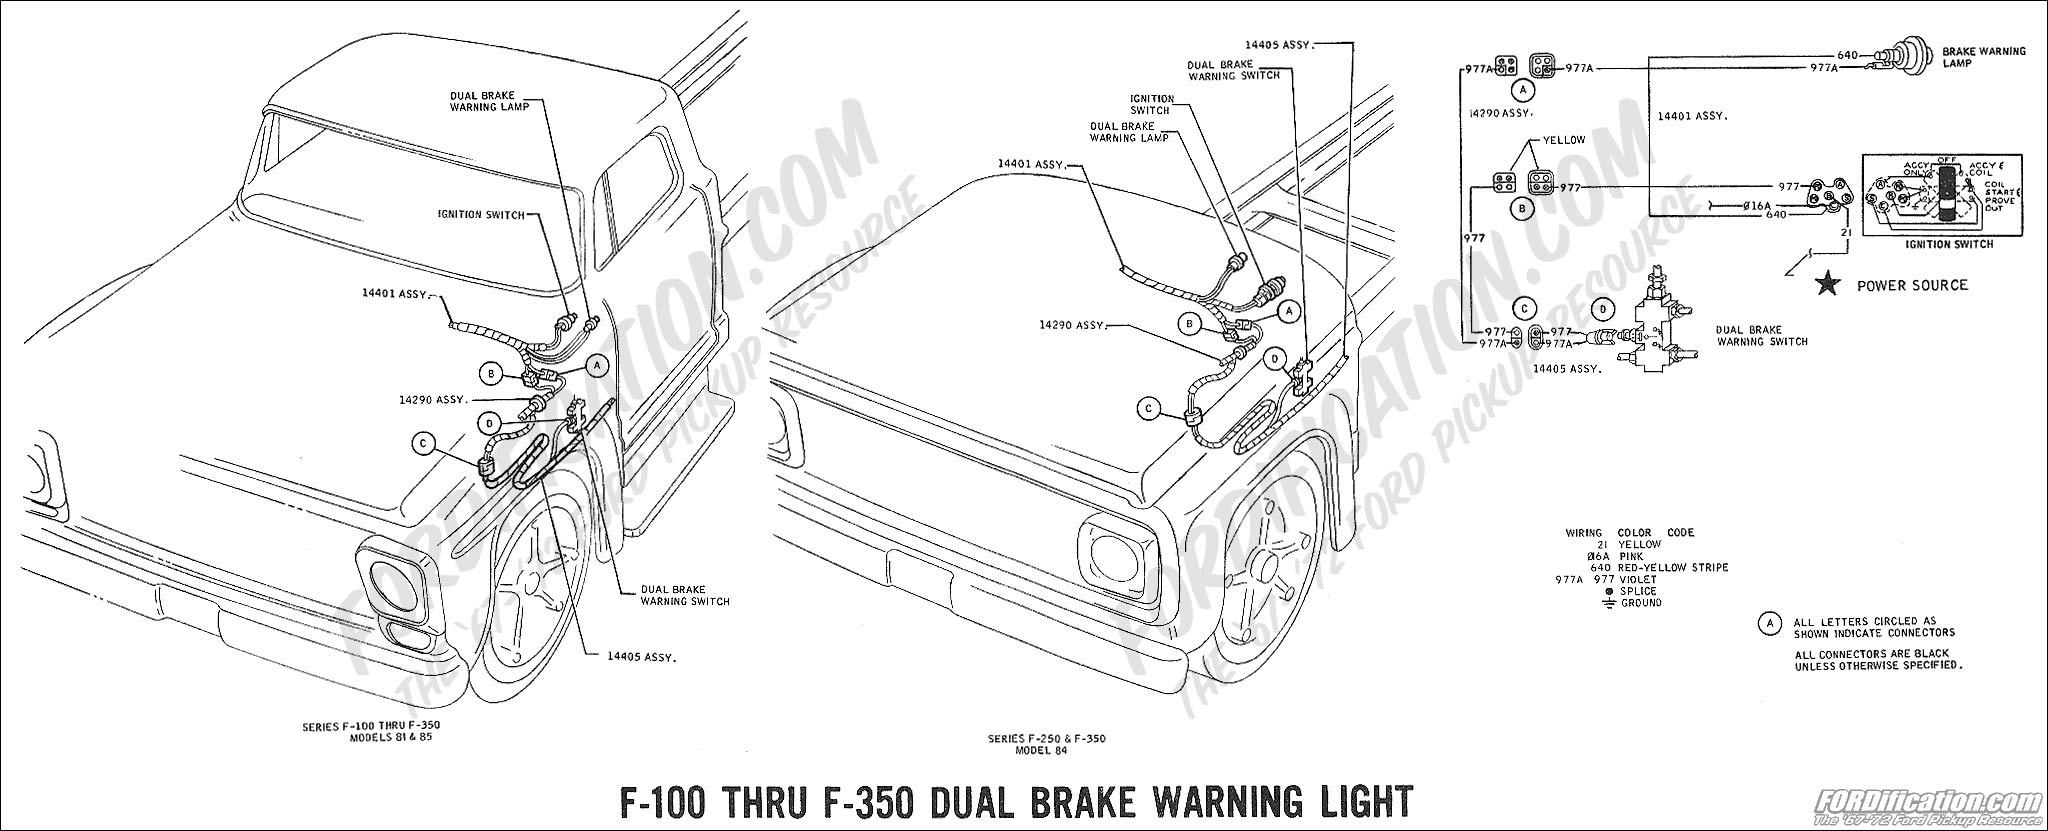 Ford Truck Technical Drawings And Schematics Section H Wiring Diagram Single Light Switch With Plugs 1969 F 100 Thru 350 Dual Brake Warning